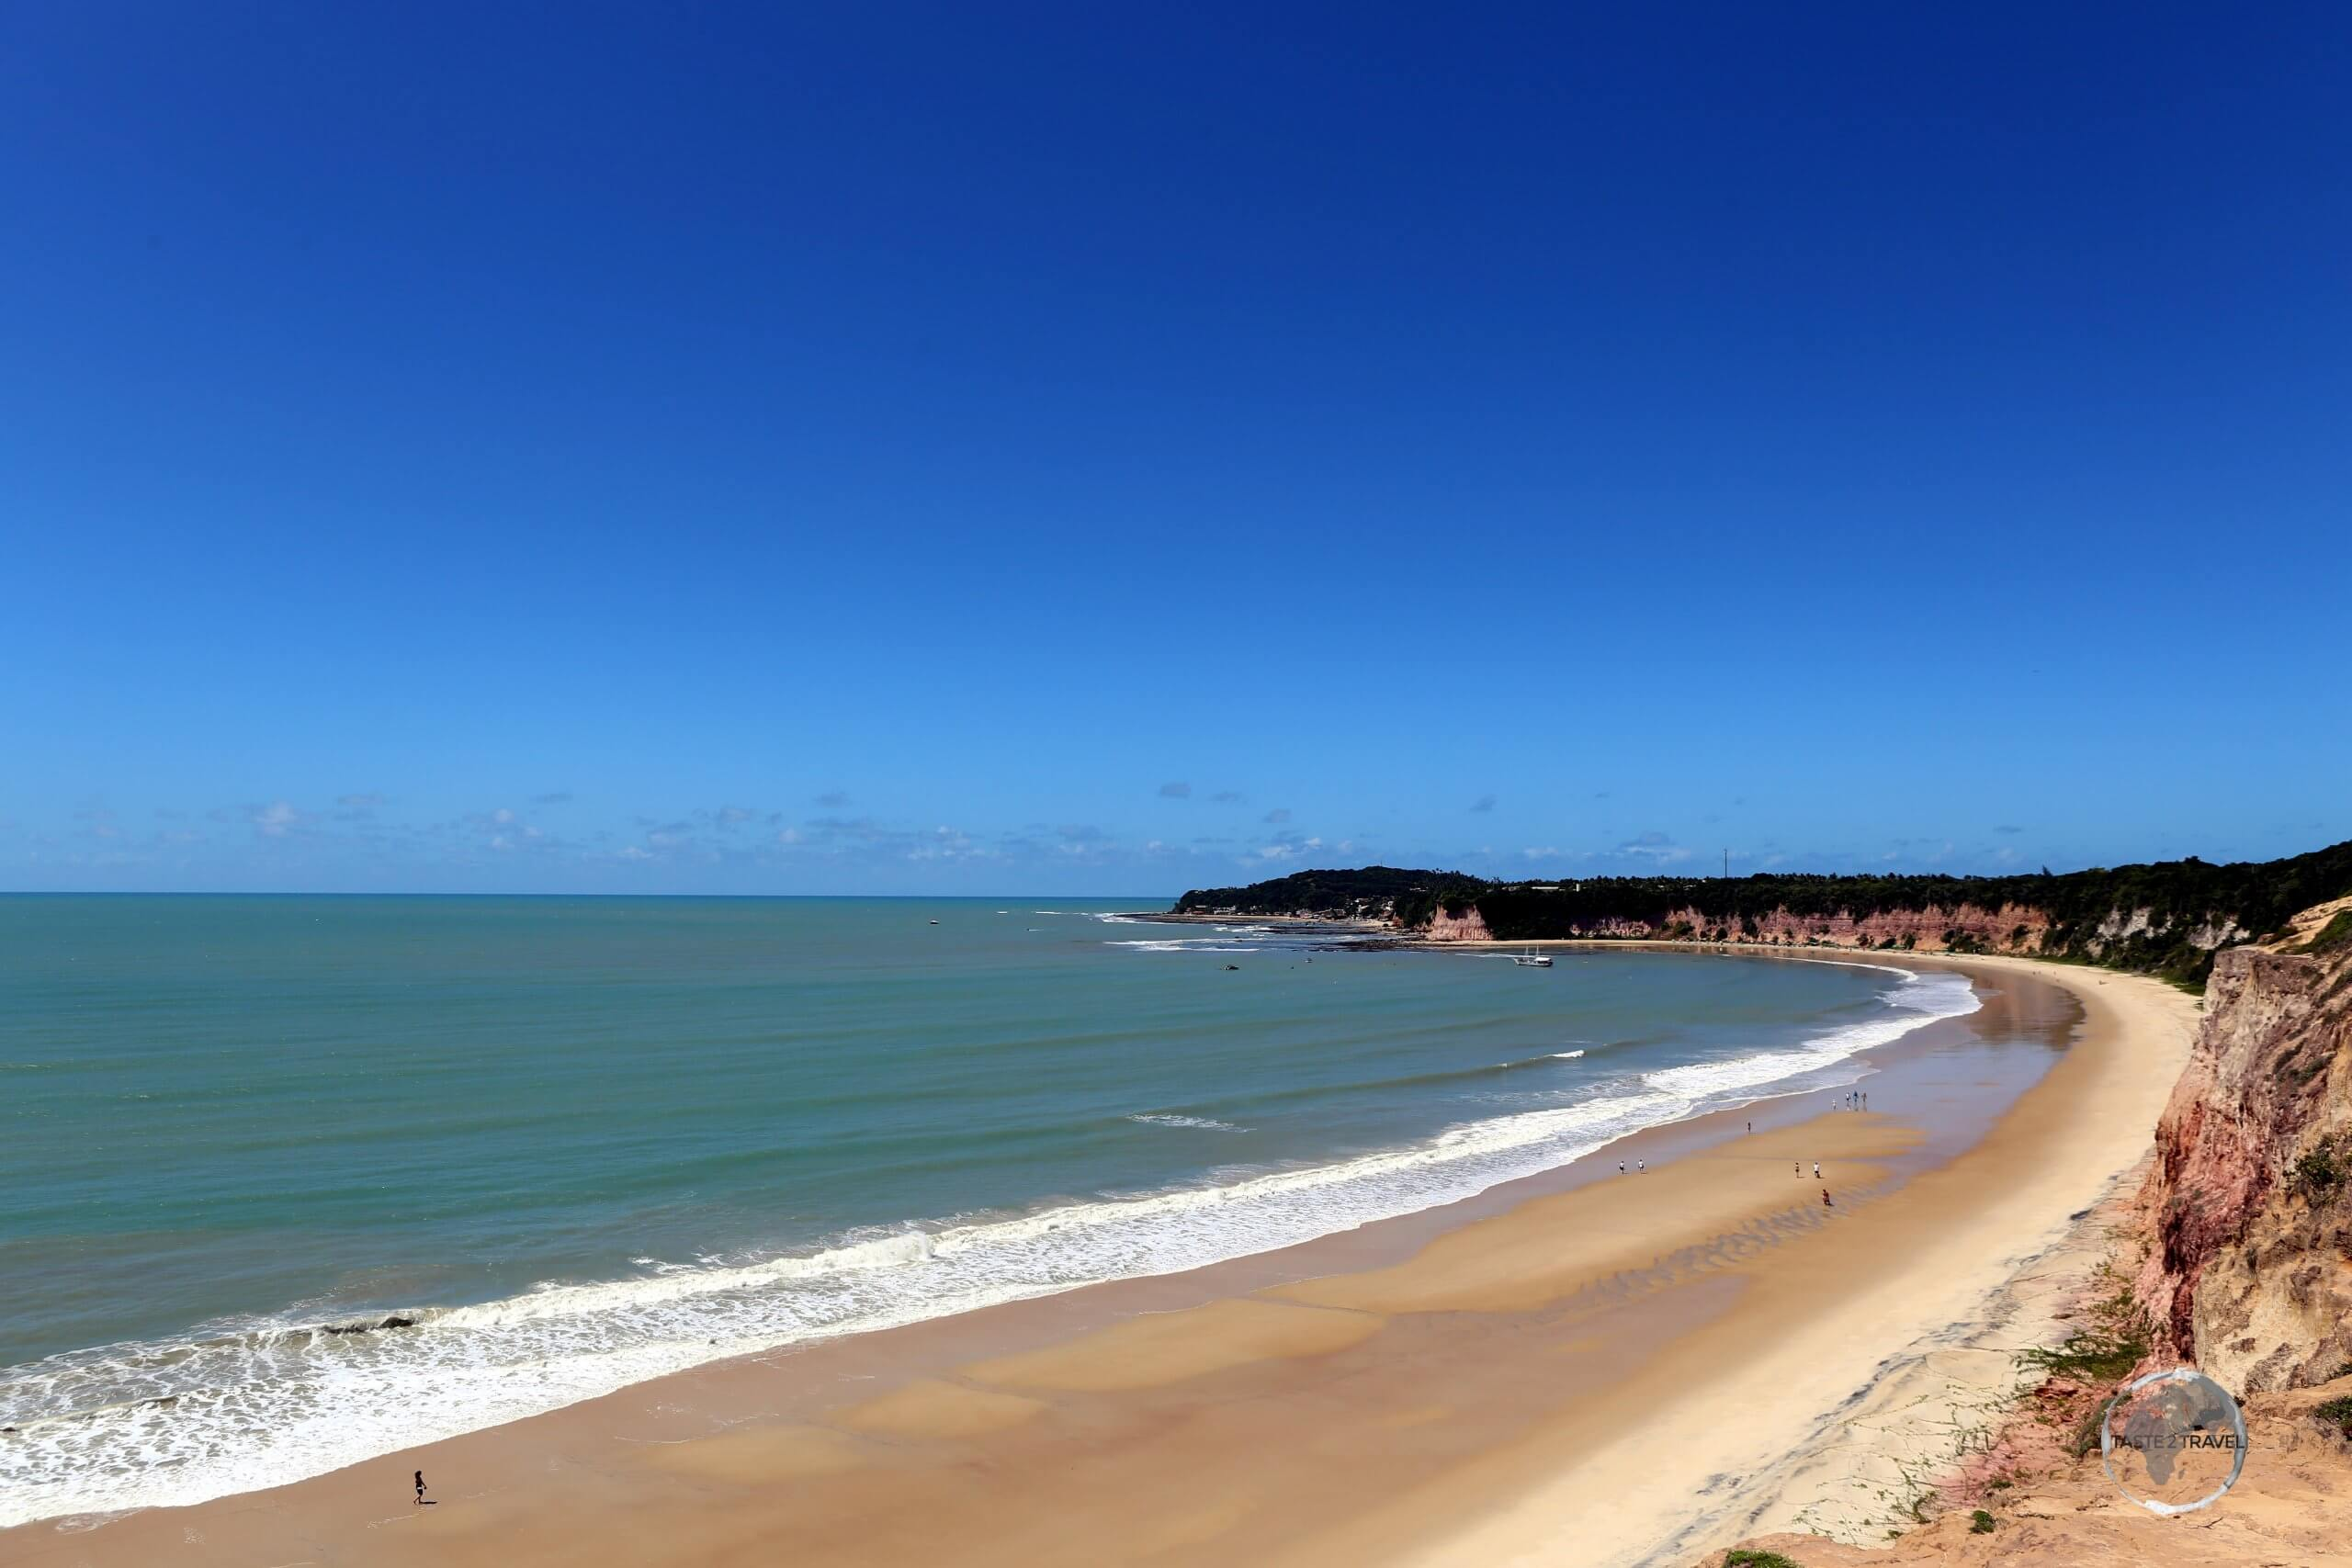 Pipa Beach (Praia de Pipa in Portuguese) is one of the most famous beaches of Brazil, located to the south of the city of Natal, in the state of Rio Grande do Norte.